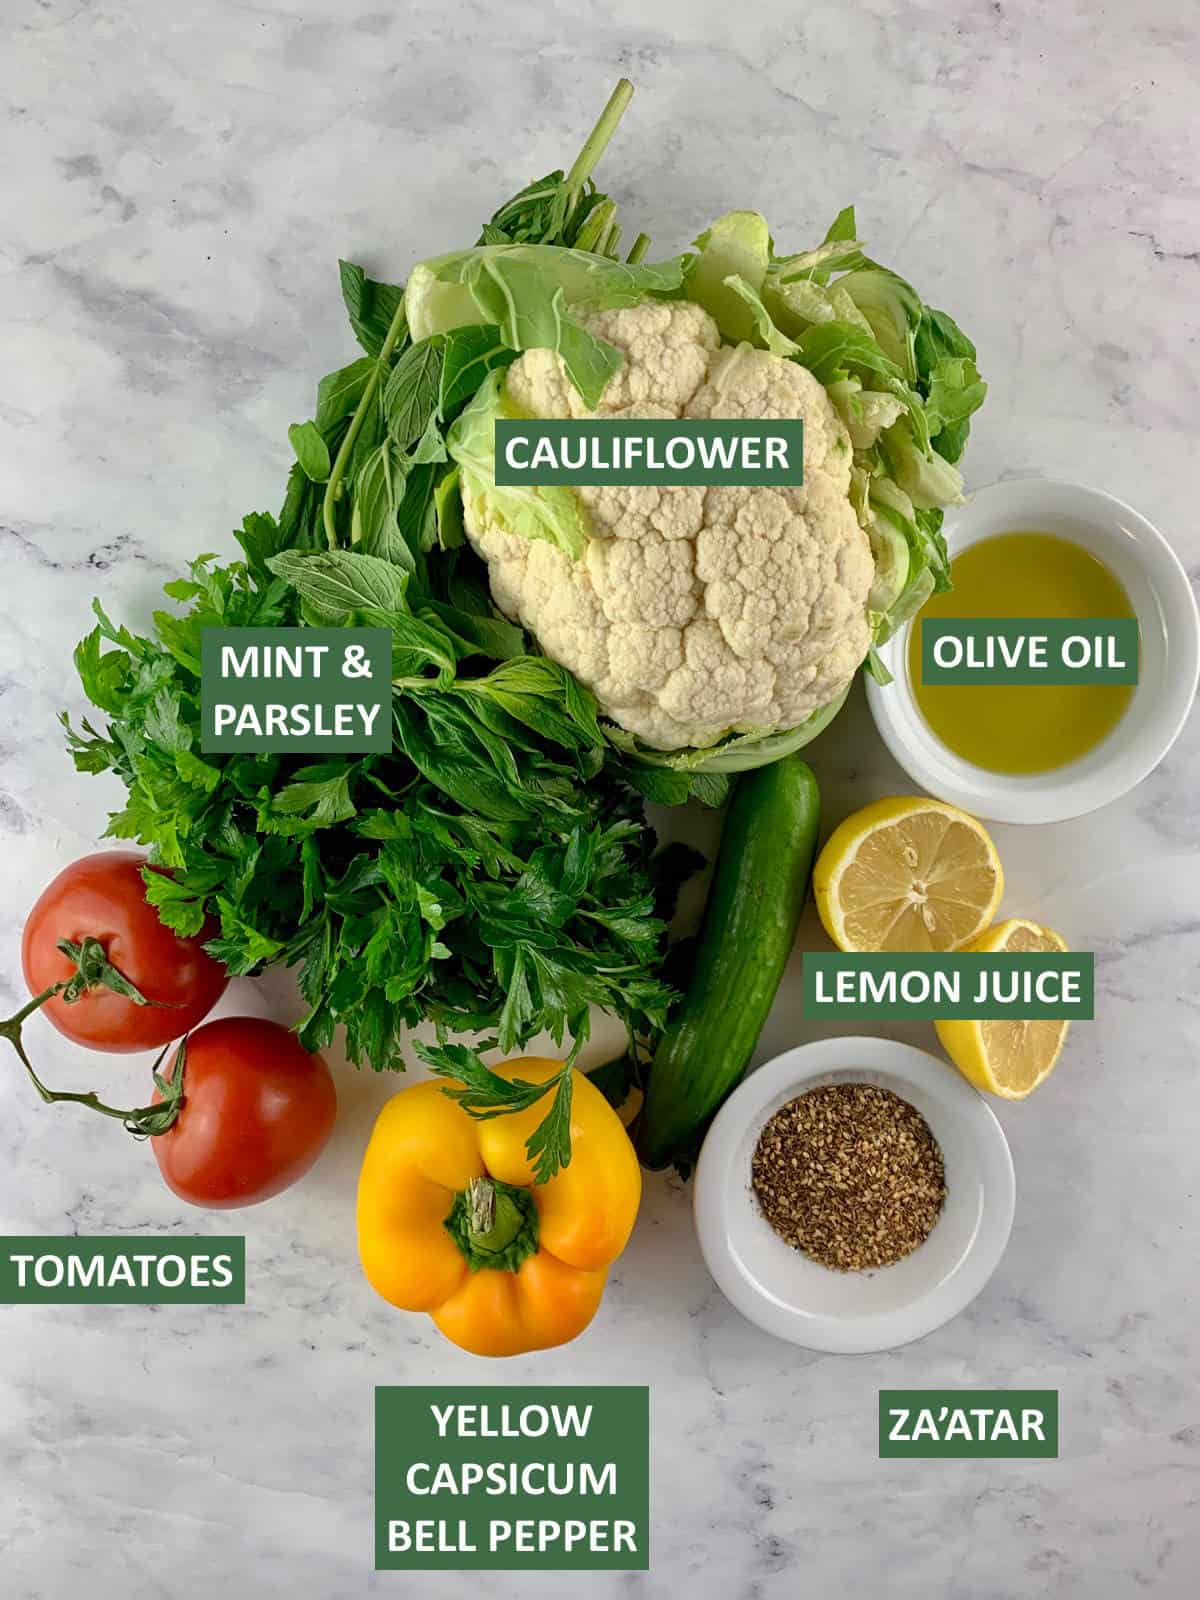 INGREDIENTS NEEDED TO MAKE CAULIFLOWER TABBOULEH